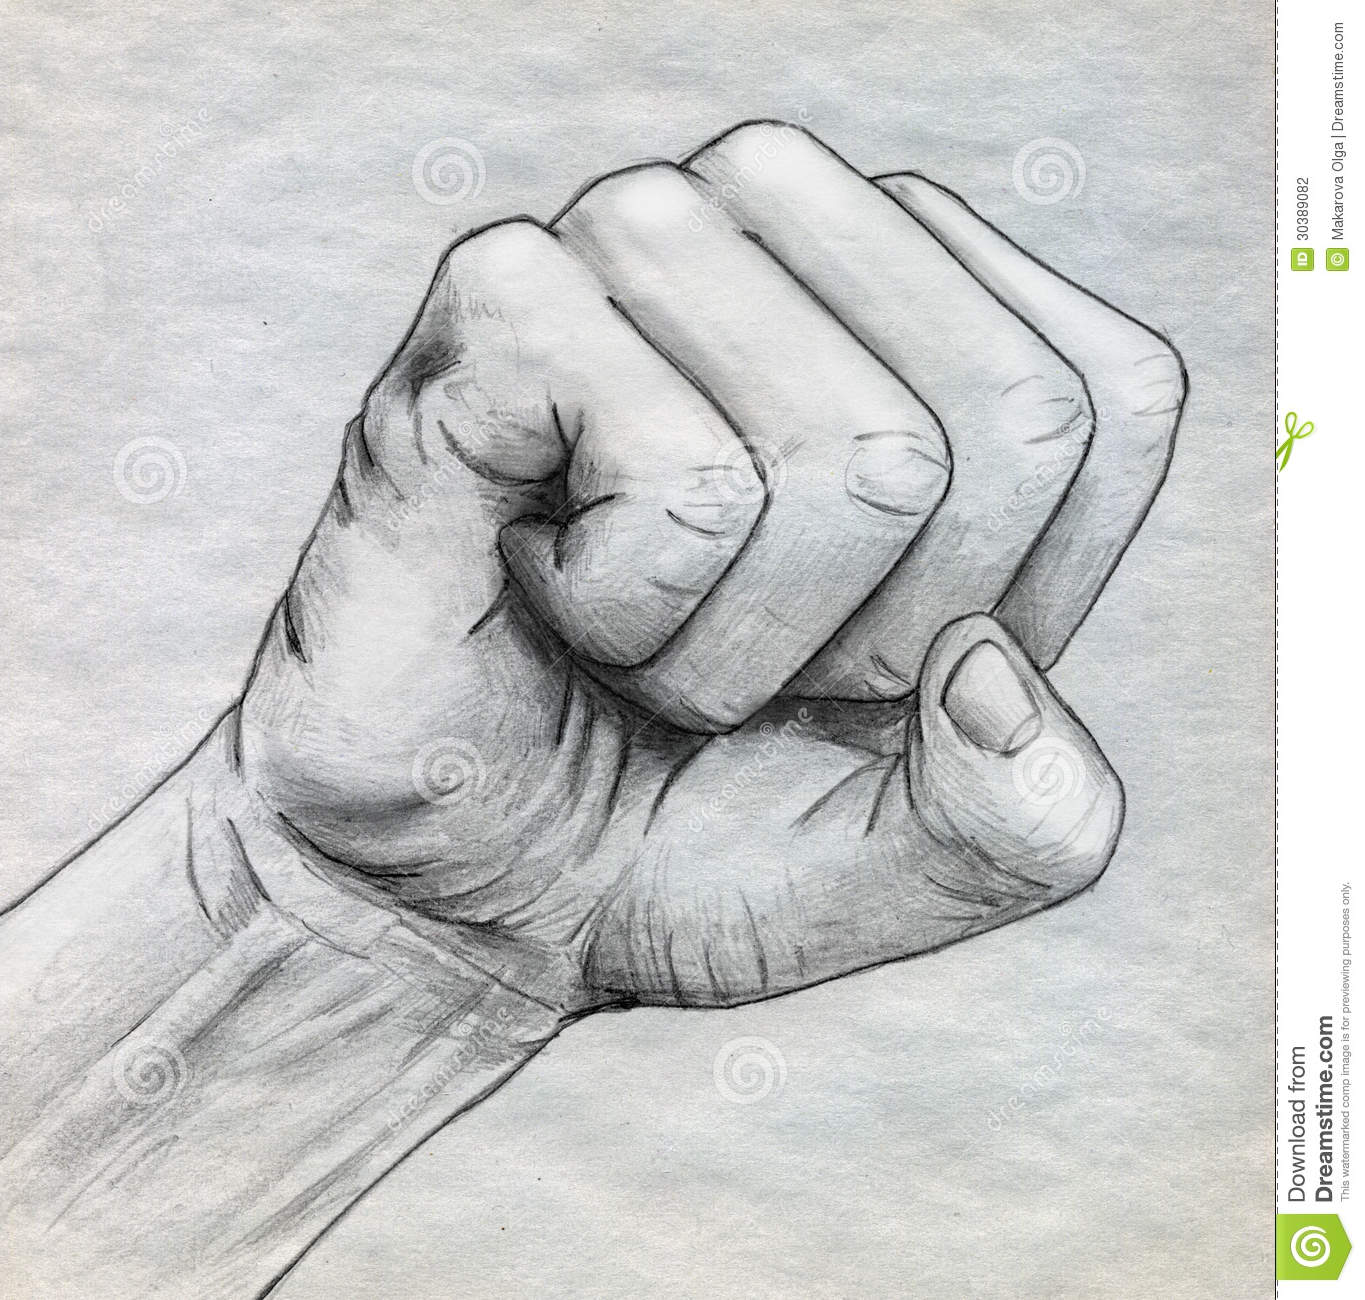 Pencil drawn clinched fist royalty free illustration